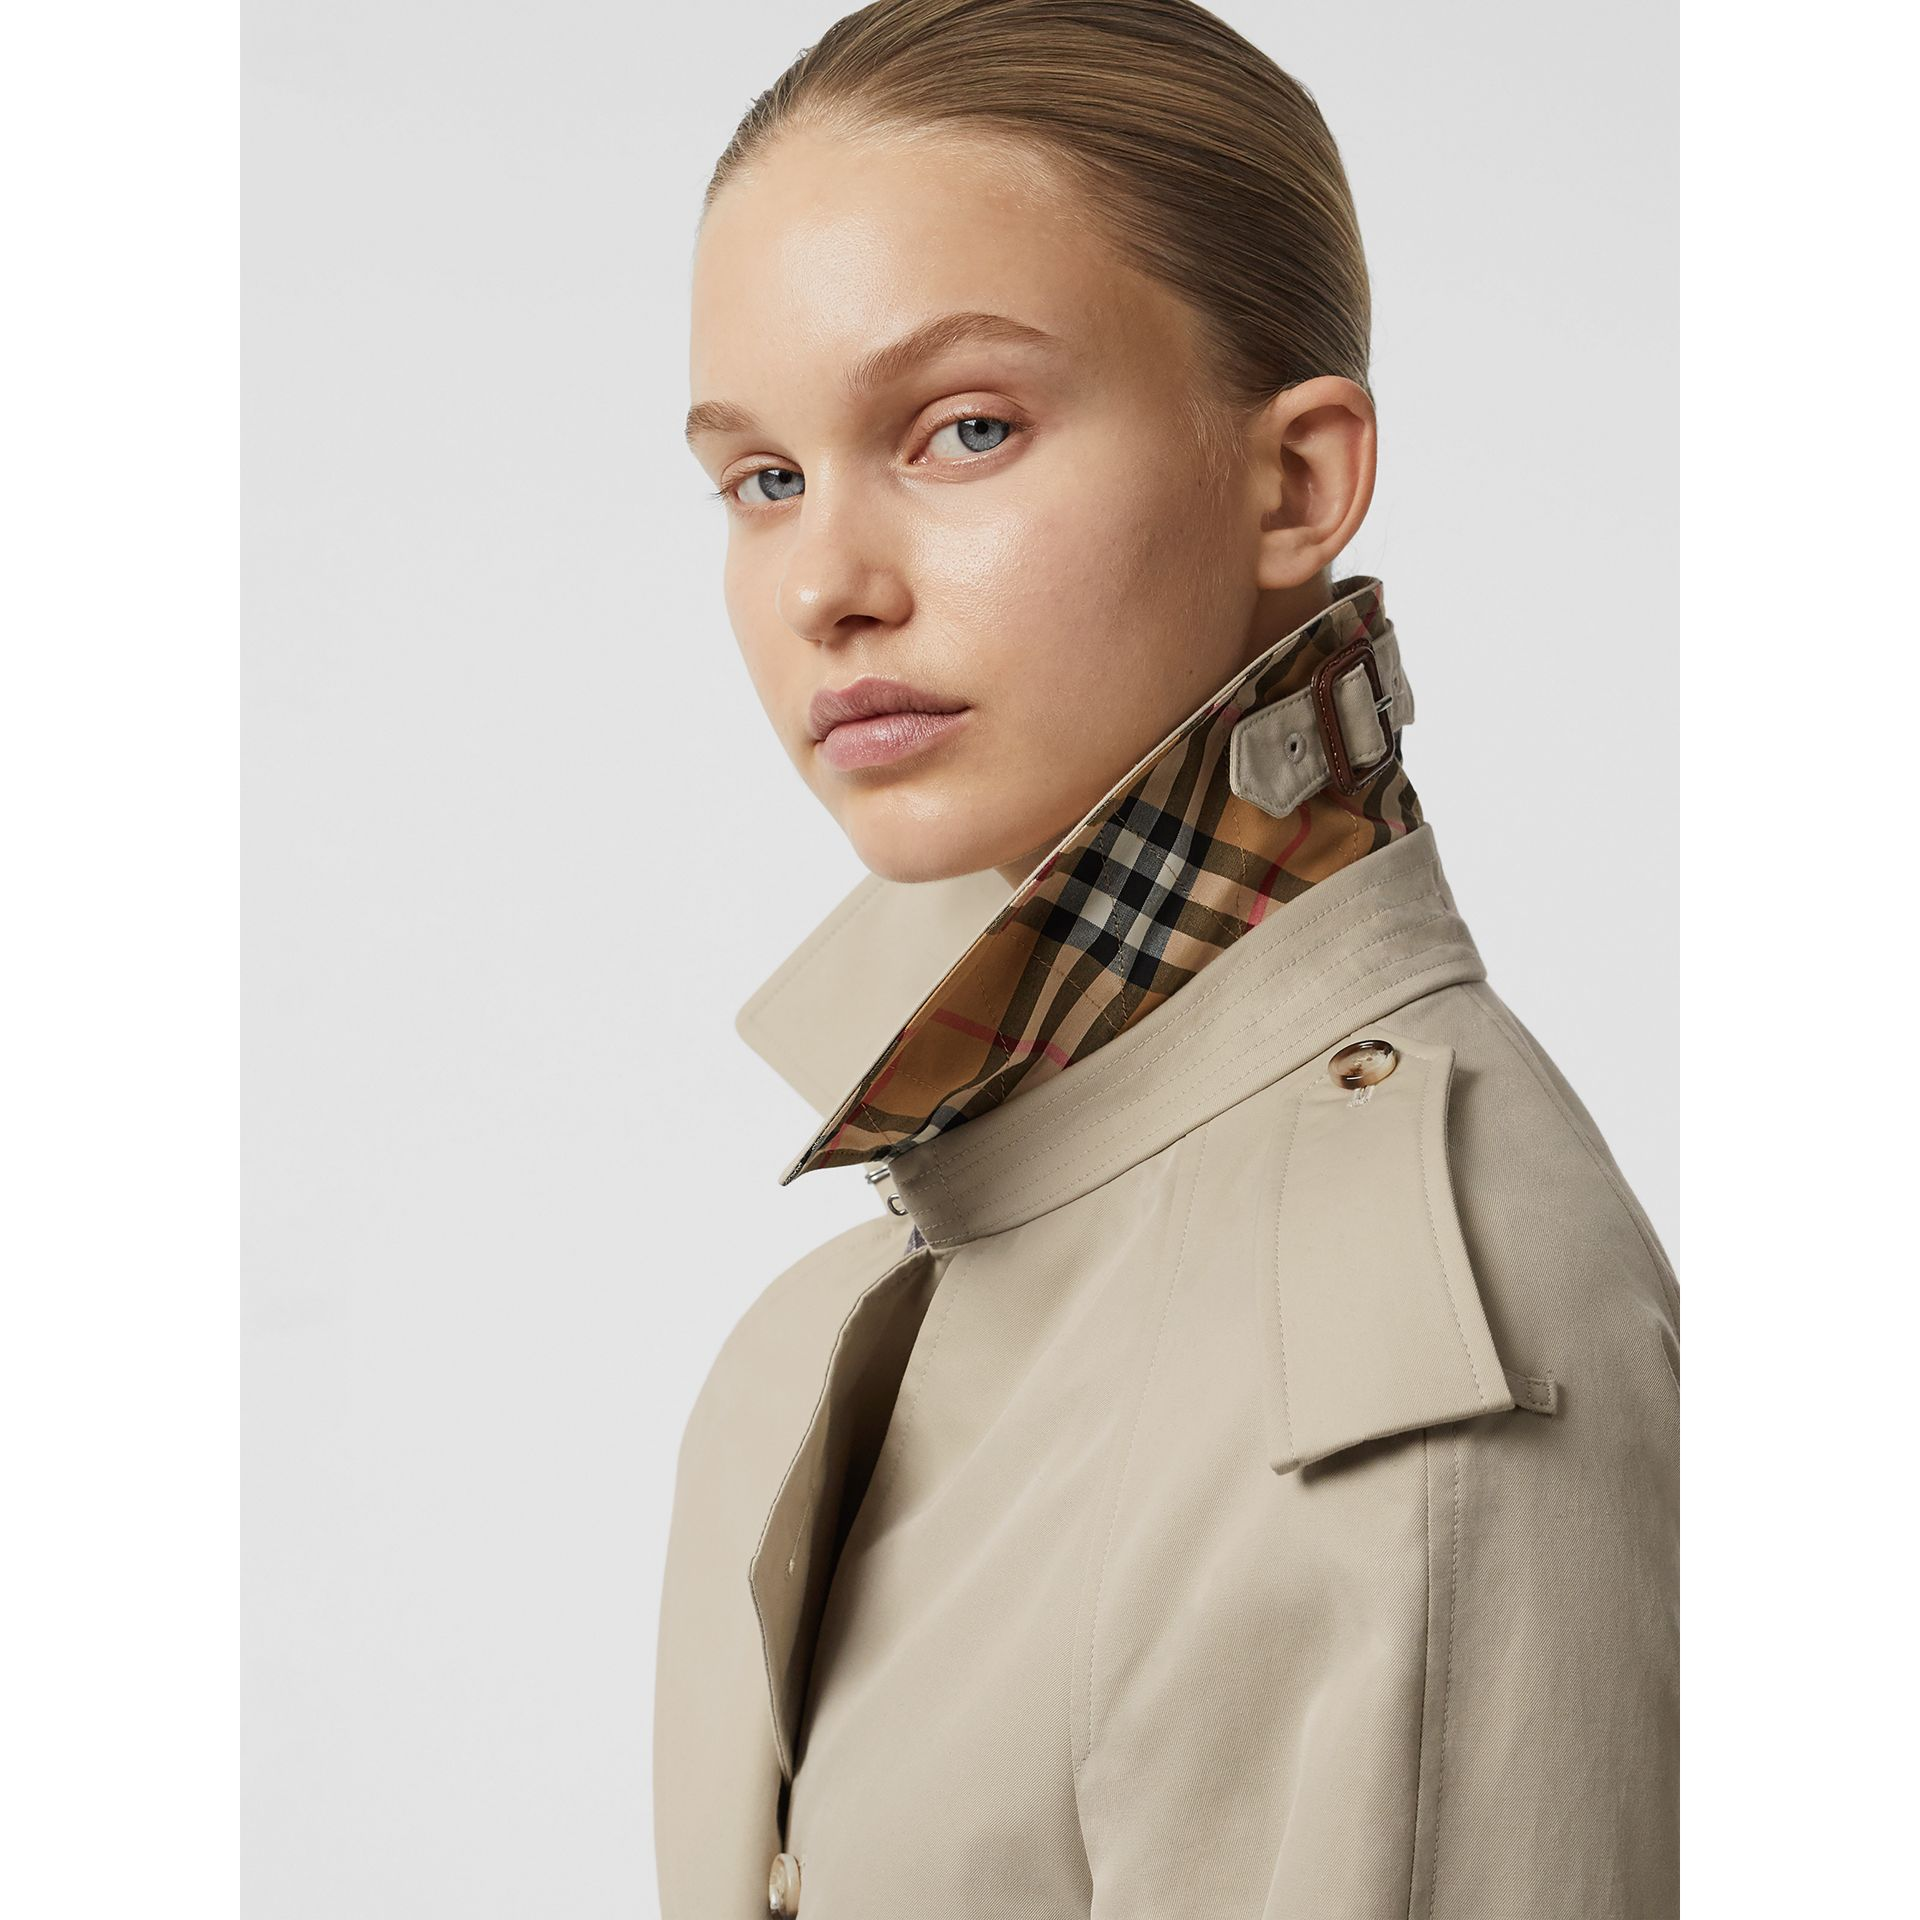 Grommet Detail Cotton Gabardine Trench Coat in Stone - Women | Burberry - gallery image 4